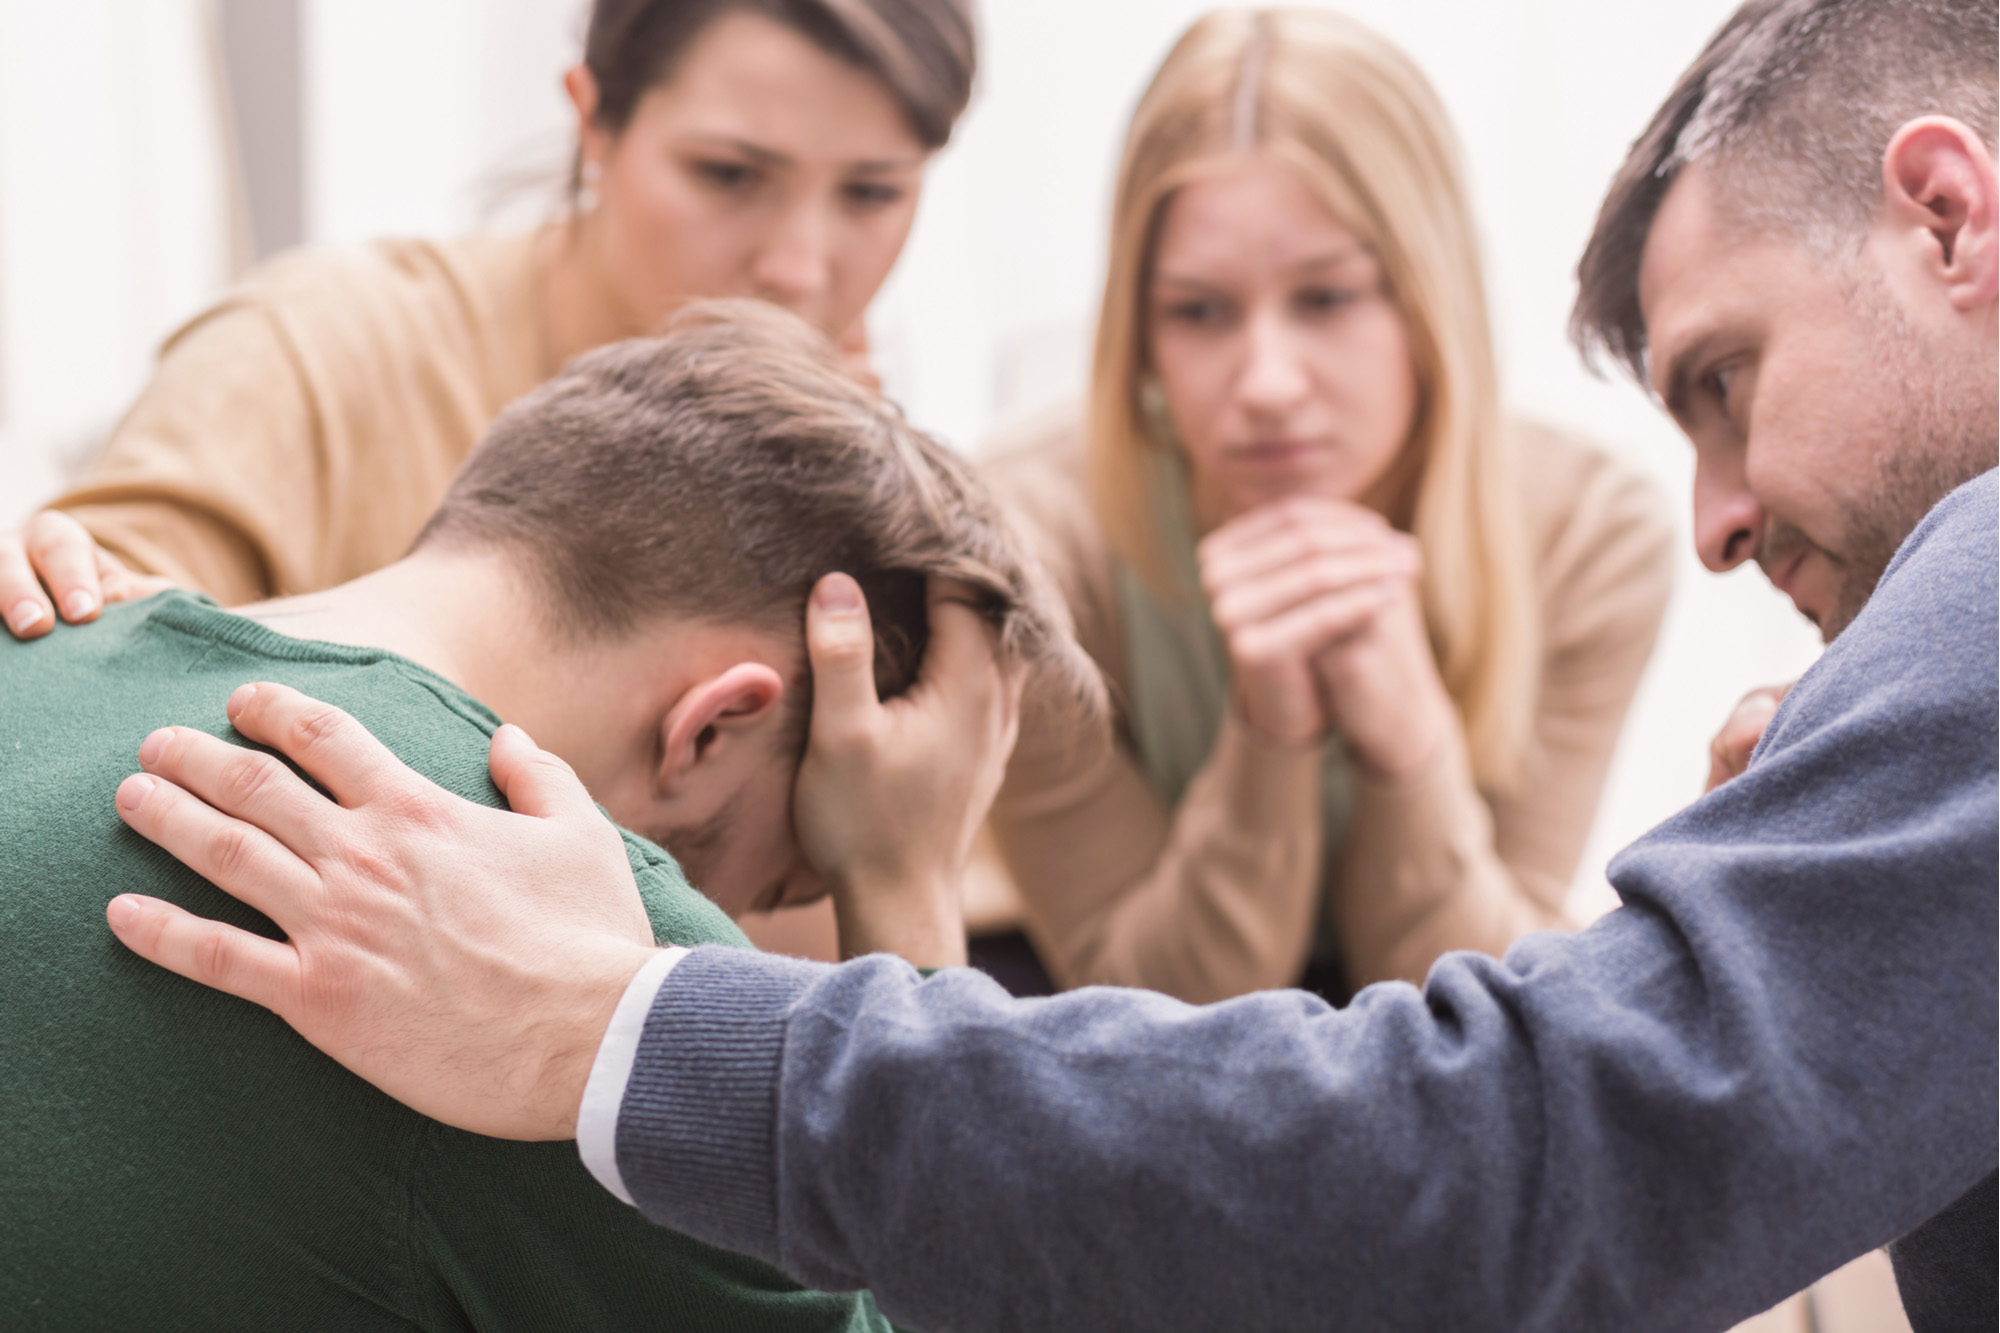 Close-up of a devastated young man holding his head in his hands and friends supporting him during group therapy - 72 ppi